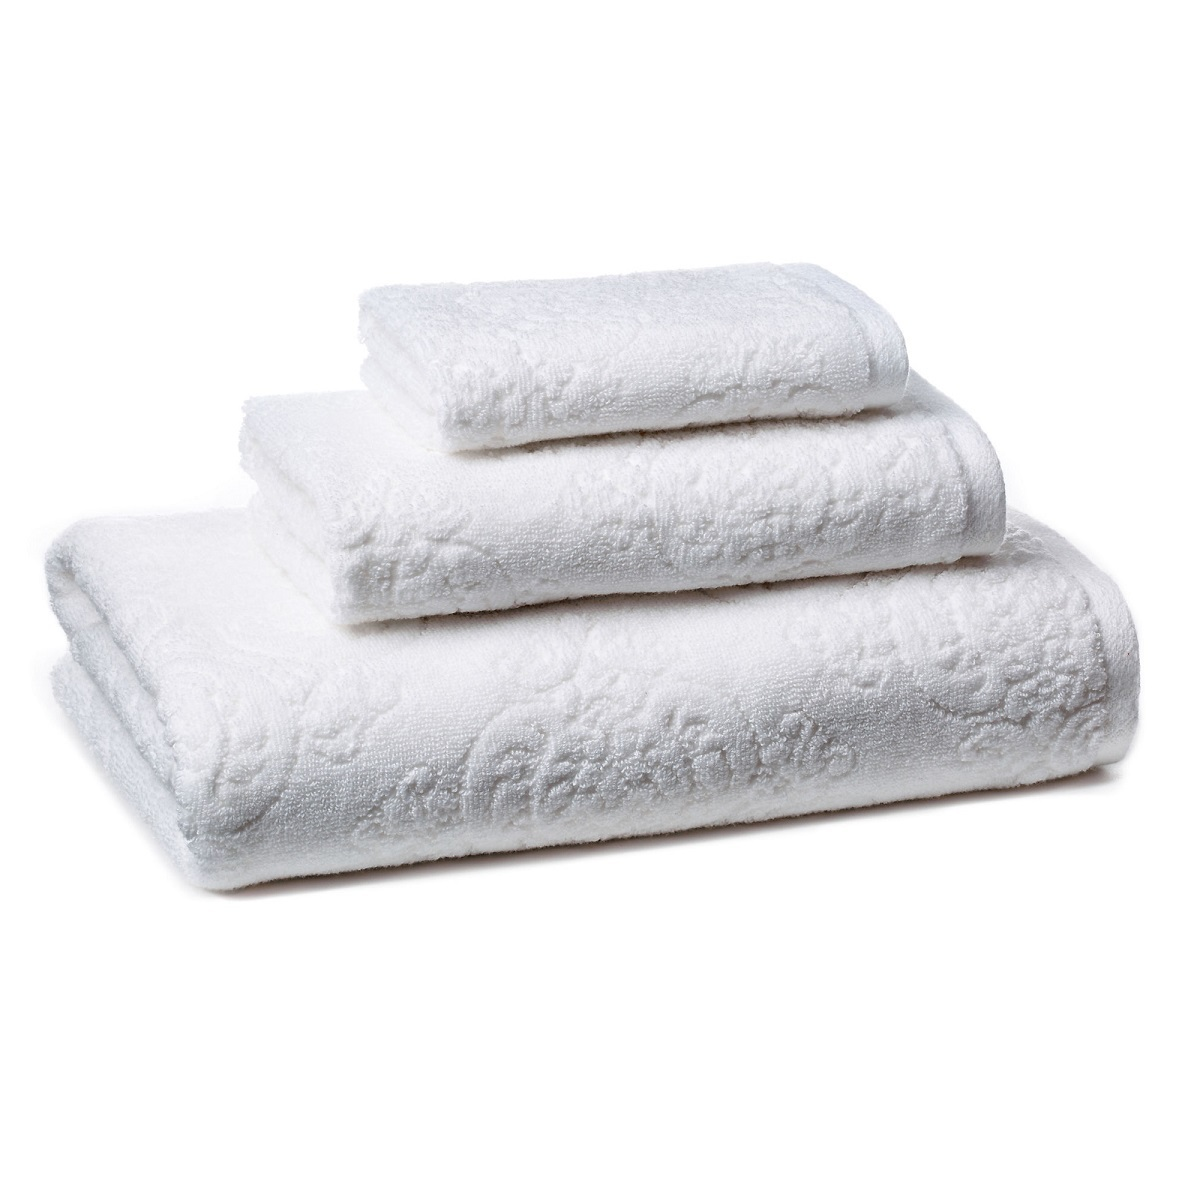 Полотенца Полотенце 46х71 Kassatex Bedminster Damask white elitnoe-polotentse-mahrovoe-bedminster-damask-white-ot-kassatex-portugaliya.jpeg